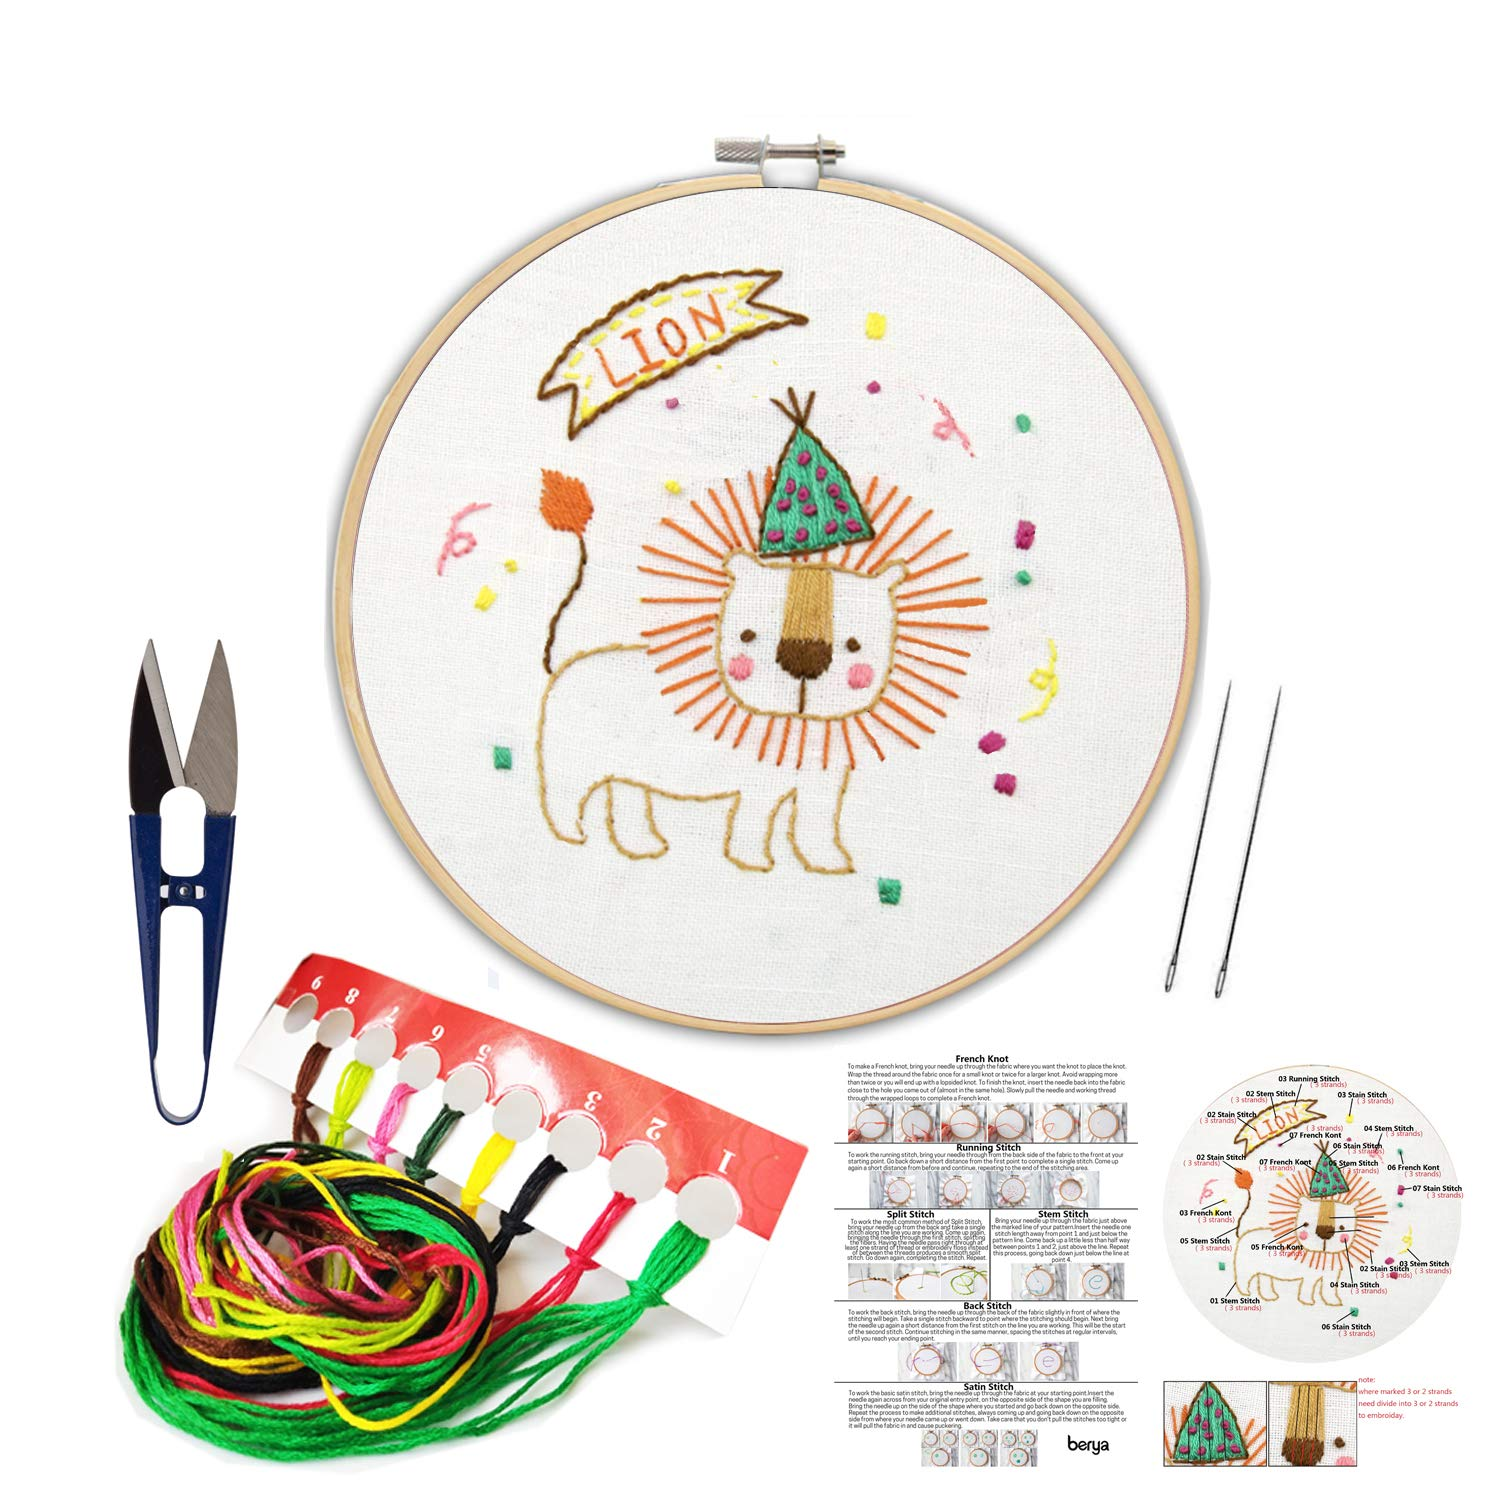 and Other Tools Kit for Beginners Color Threads Handmade Embroidery Starter Kit Set with Pattern Including Embroidery Cloth,Bamboo Embroidery Hoop